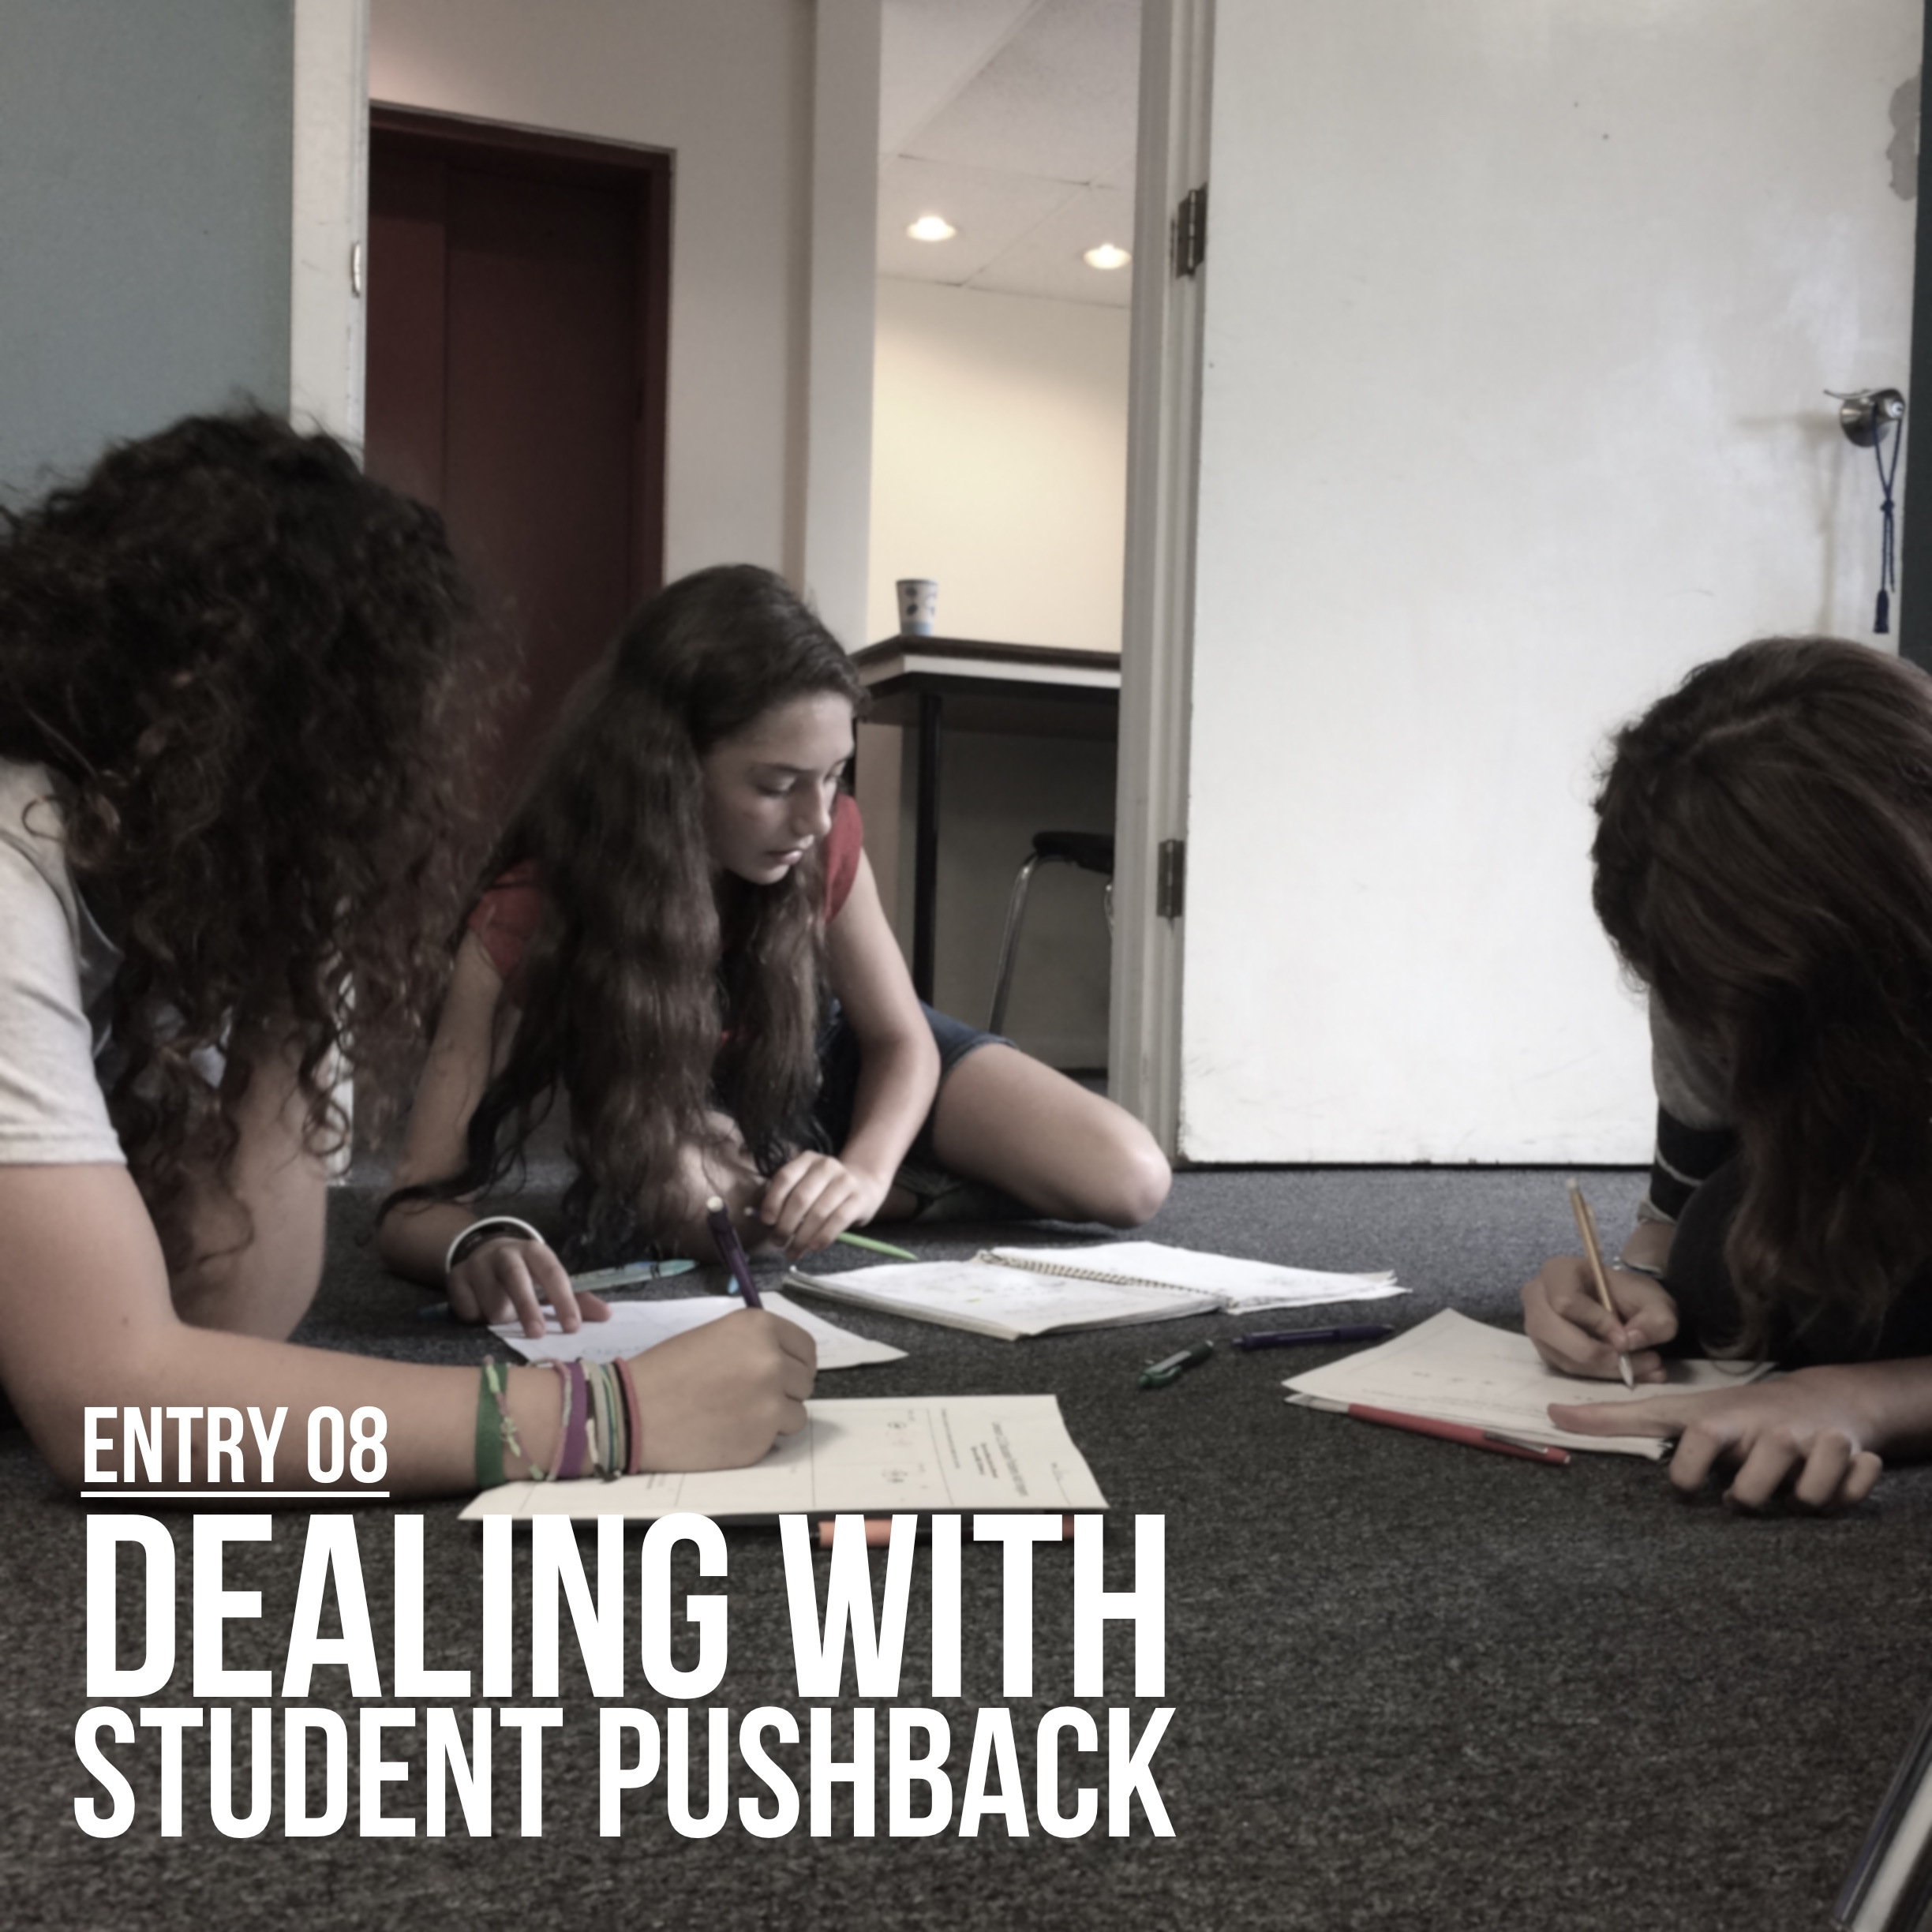 Entry 08 – Dealing With Student Pushback